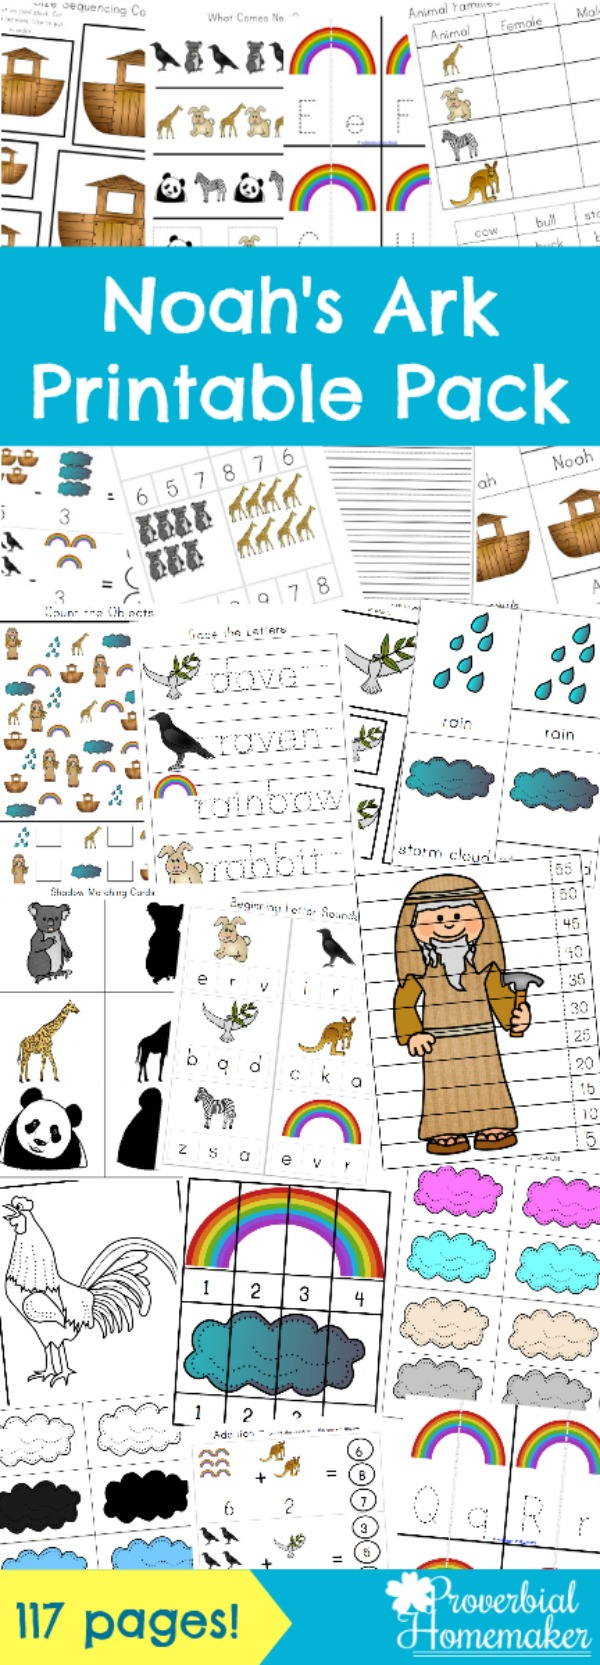 photo about Noah's Ark Printable named Noahs Ark Printable Pack - Proverbial Homemaker